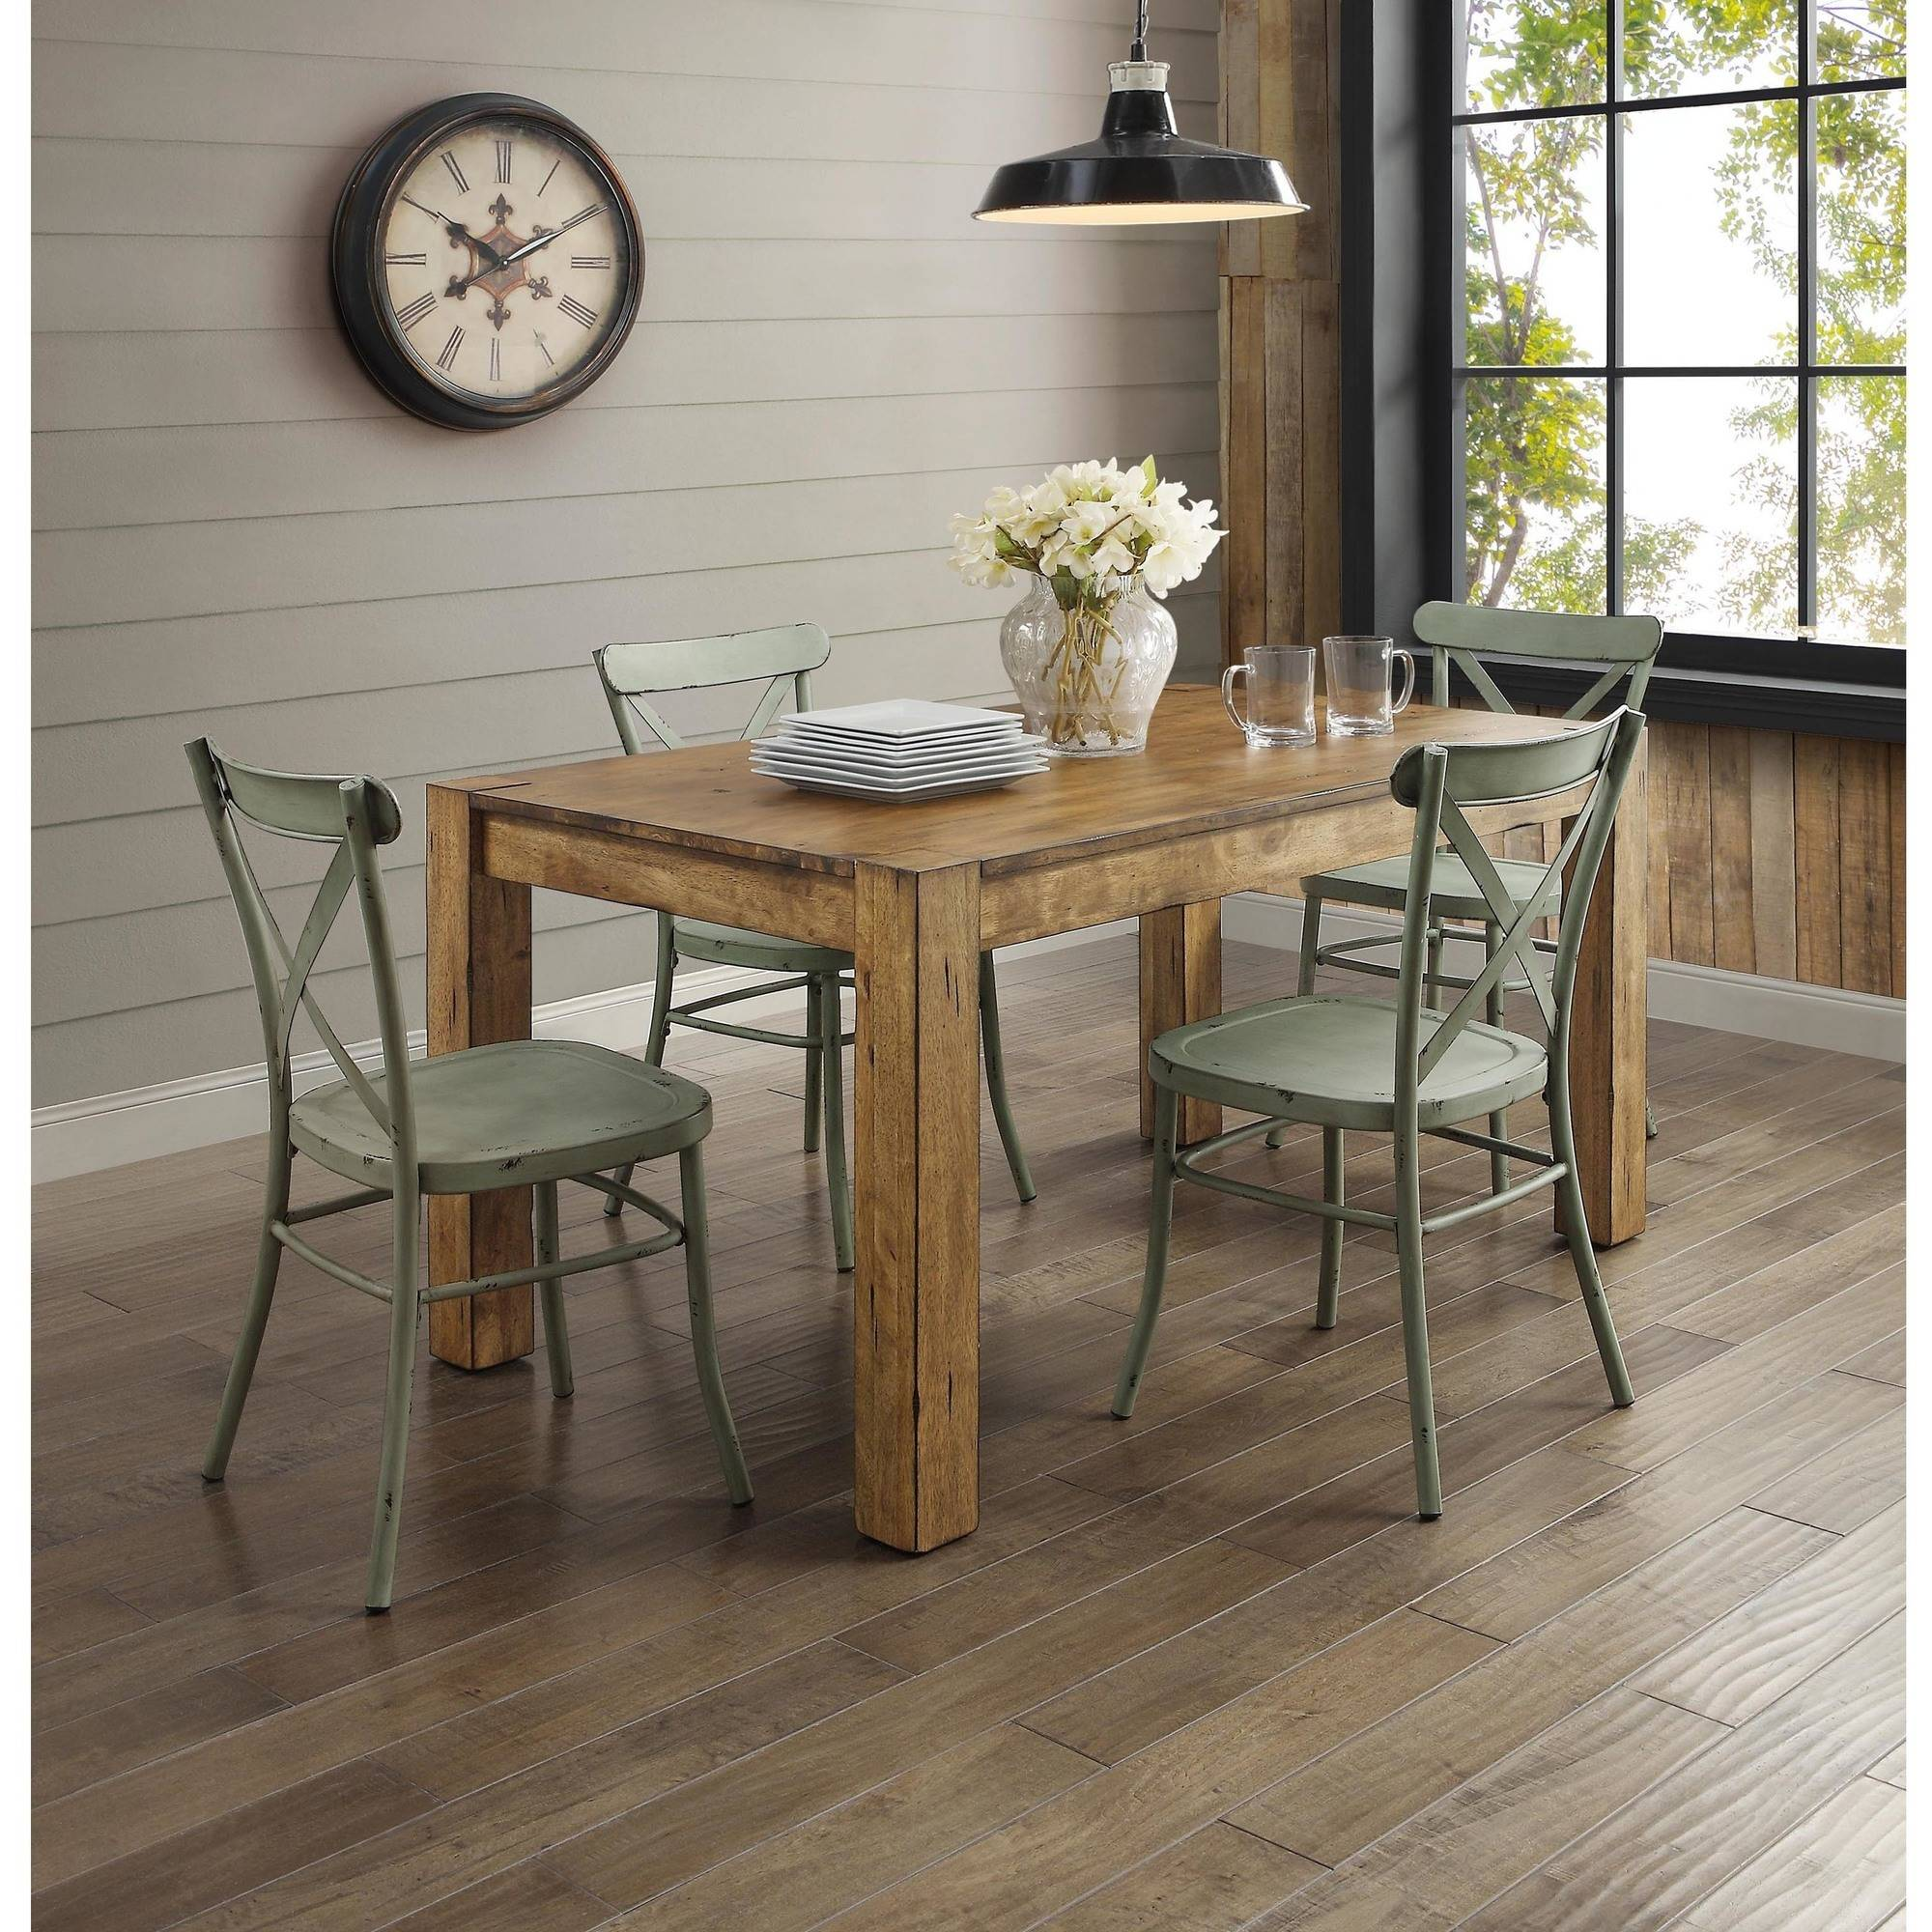 Better Homes and Gardens Collin Silver Dining Chair, 2-Pack | eBay